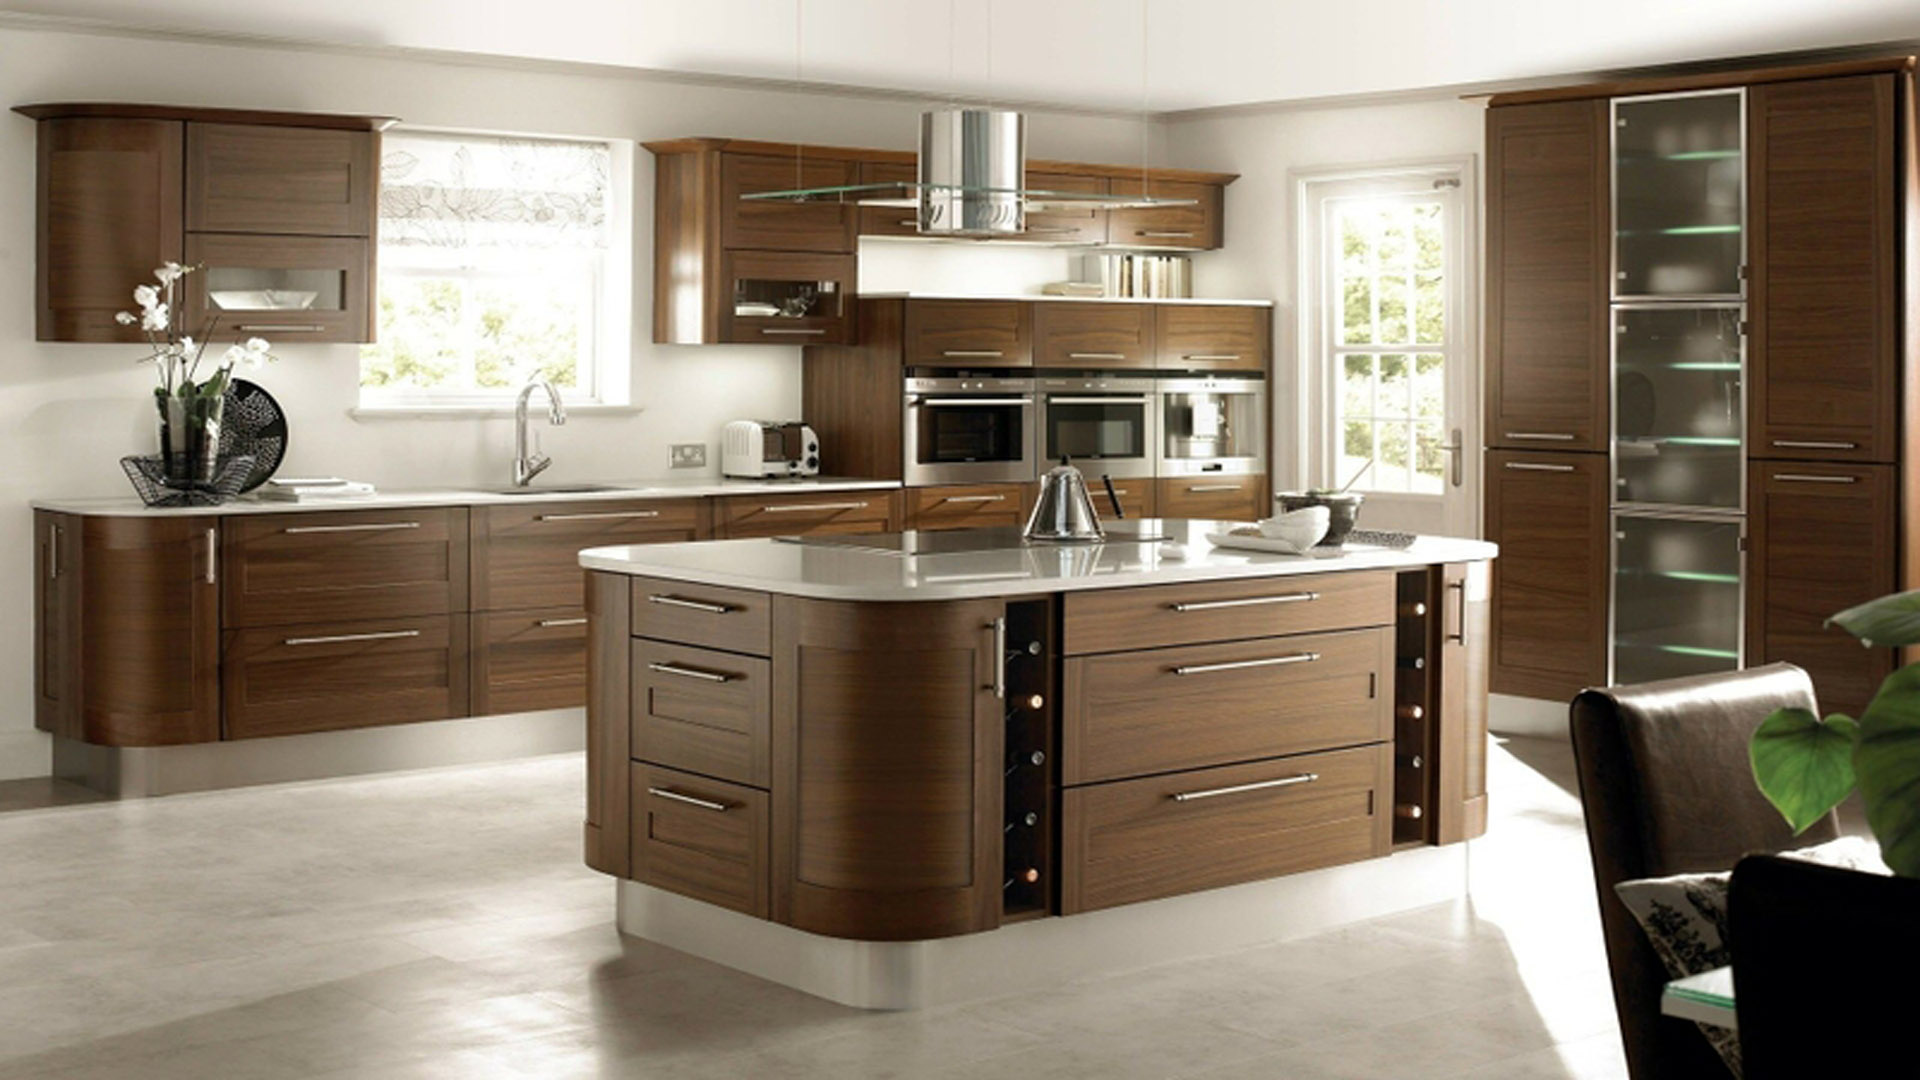 kitchen-furniture-interior-designs-1920x1200-wallpaper_www.wall321.com_83